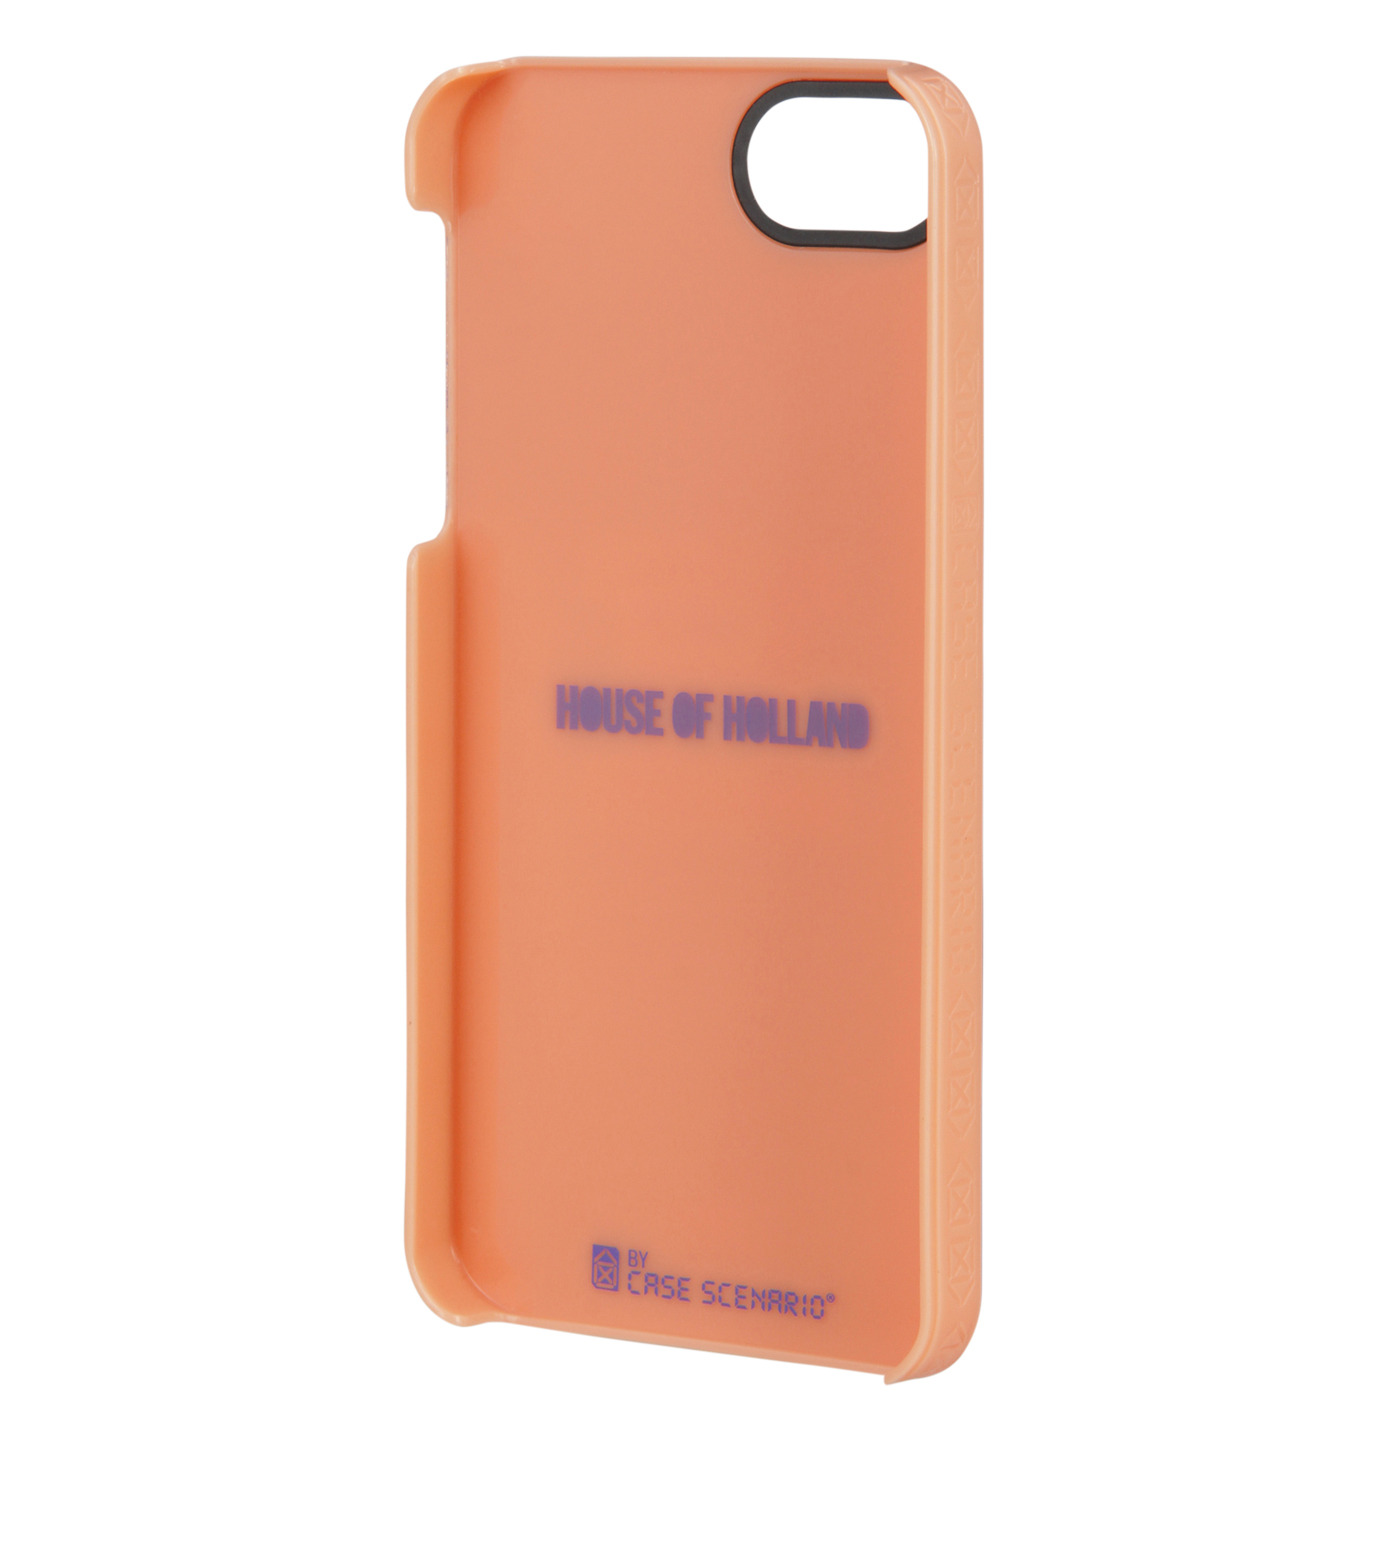 CASE SCENARIO(ケースシナリオ)のHouse of holland-BLUE(ケースiphone5/5s/se/case iphone5/5s/se)-HH-IPH5-H01-92 拡大詳細画像2